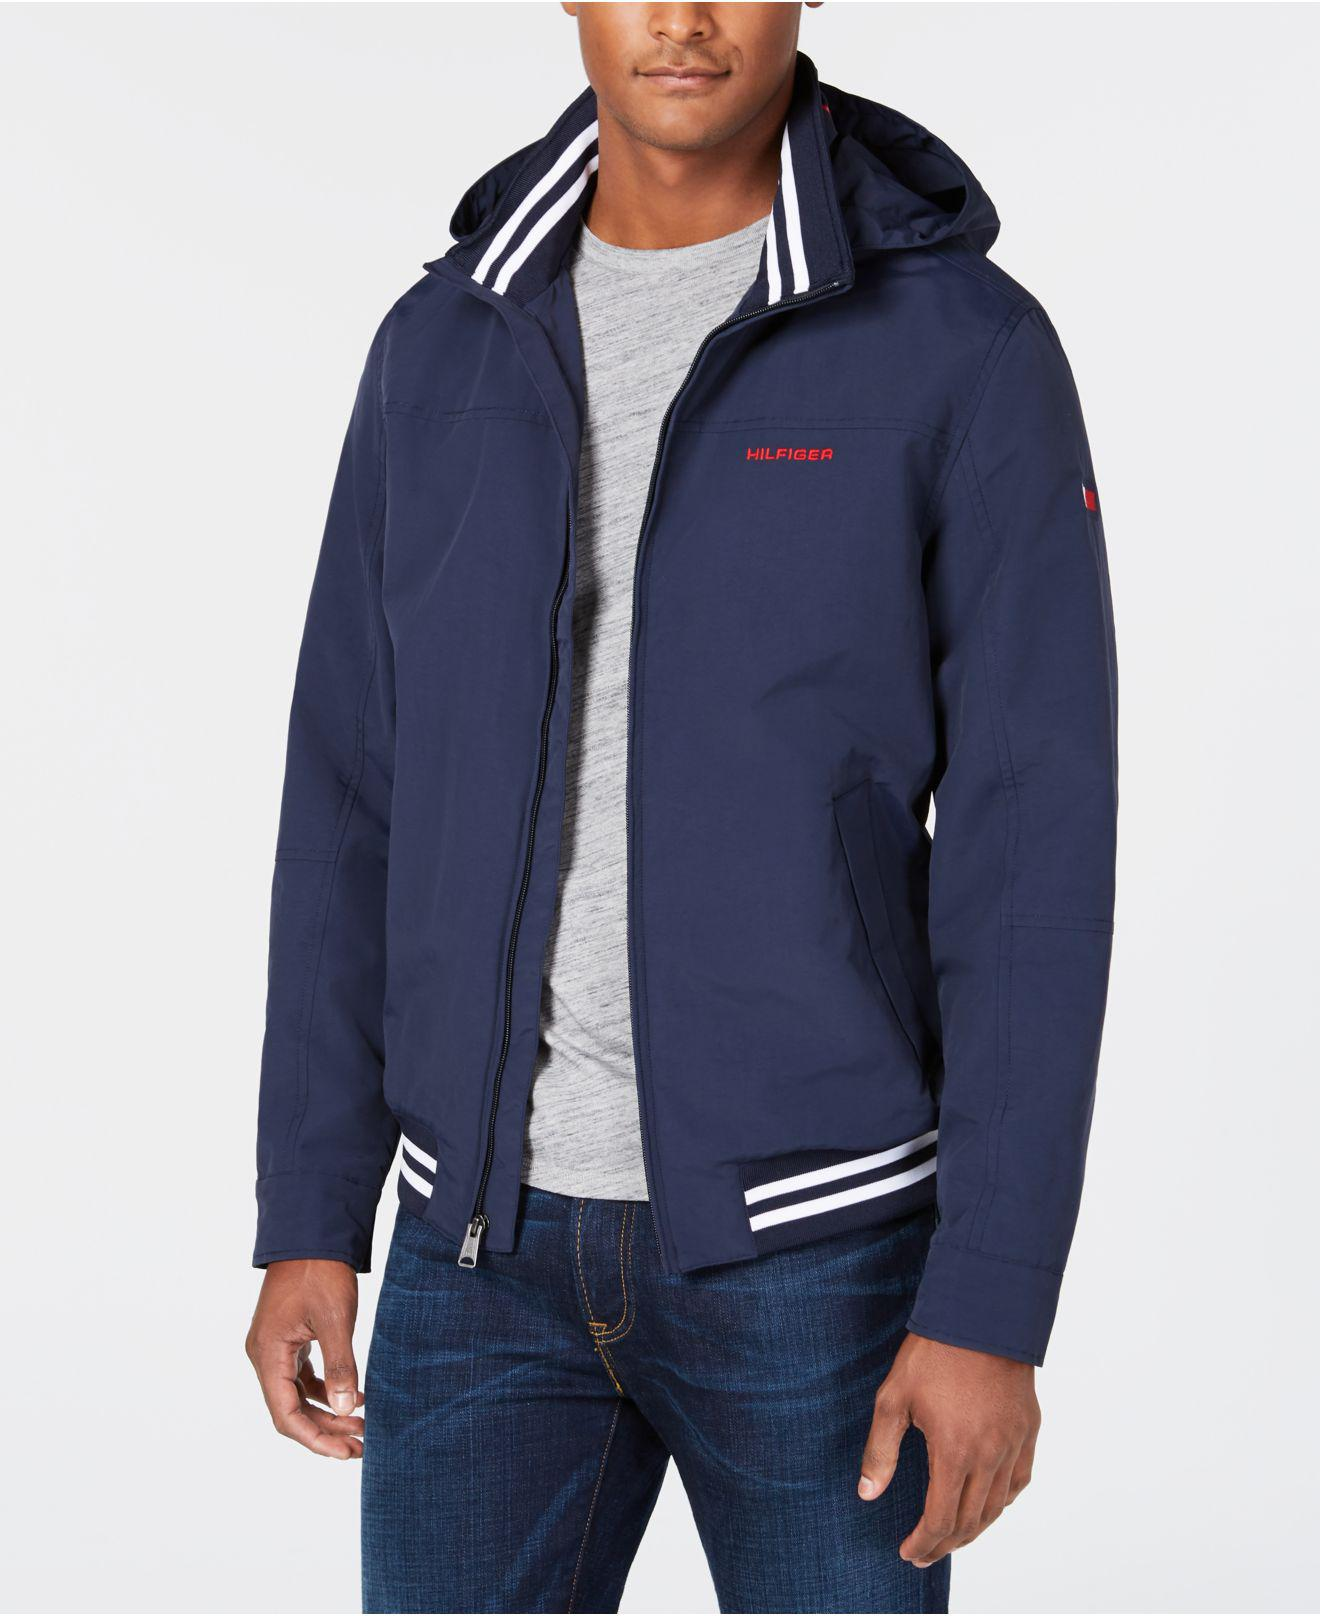 b0085d2e Tommy Hilfiger Regatta Jacket, Created For Macy's in Blue for Men ...